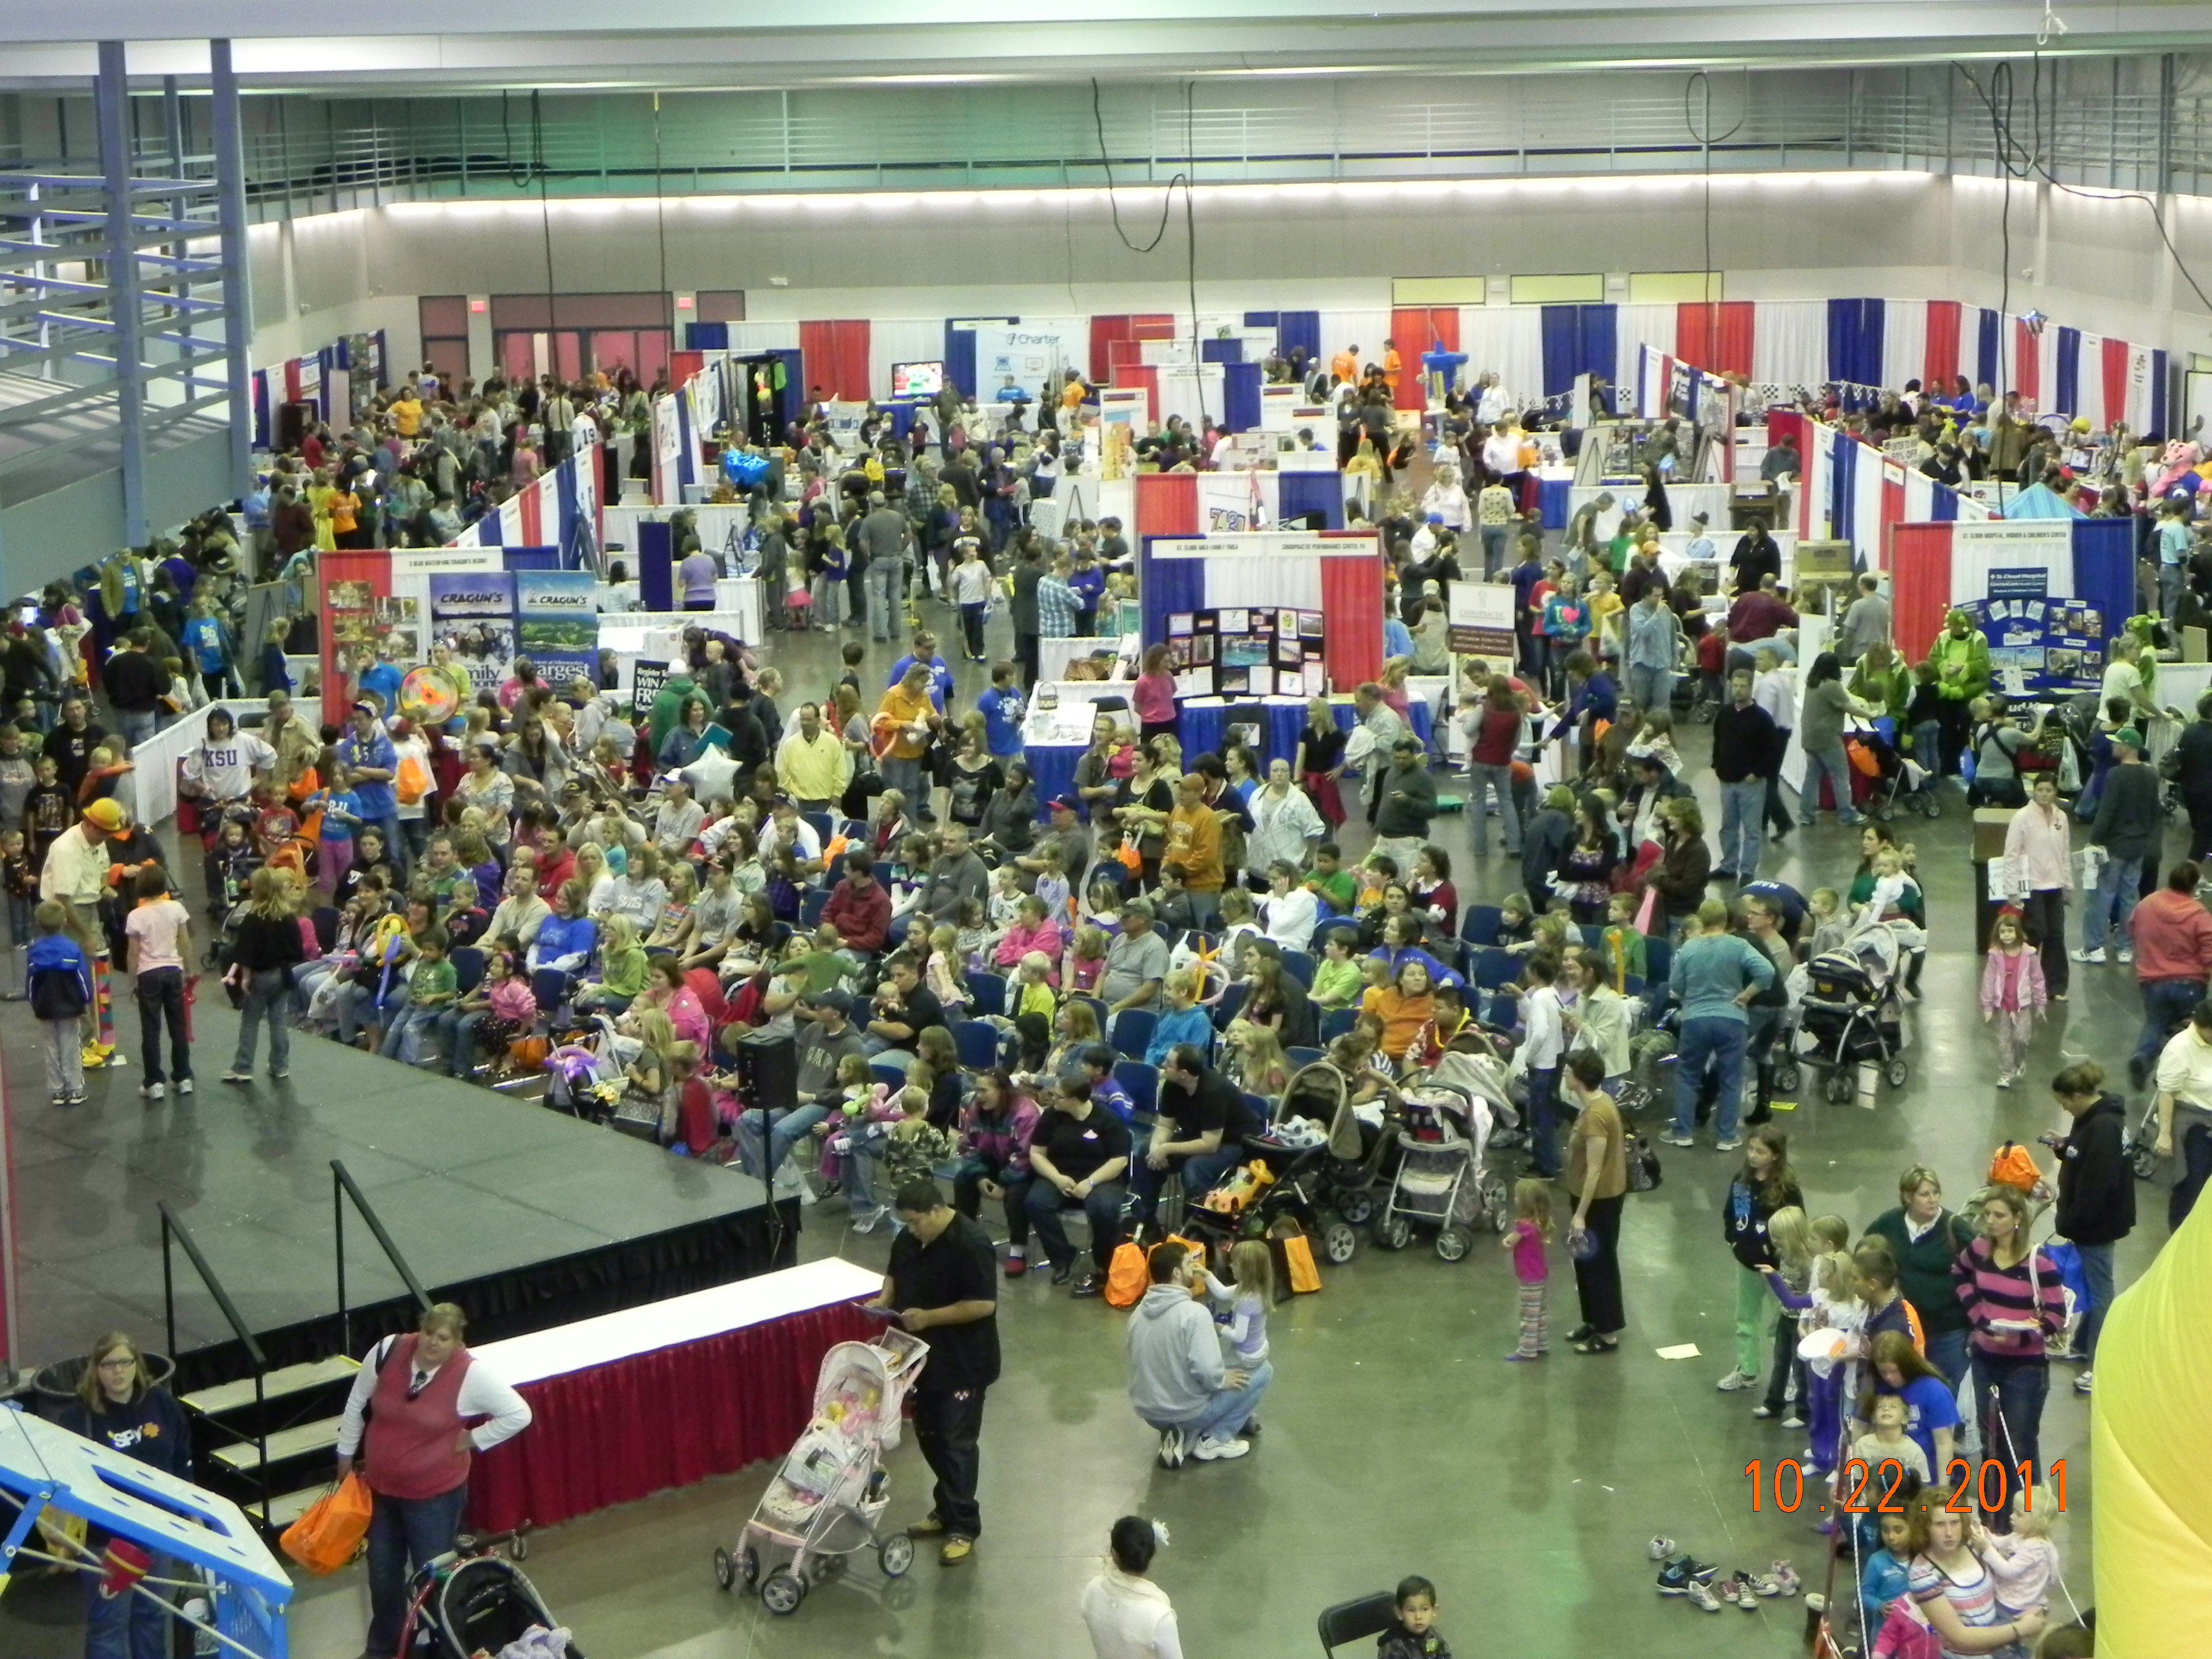 Aerial view of parents and kids gathered in convention hall for Kids and Parents Expo